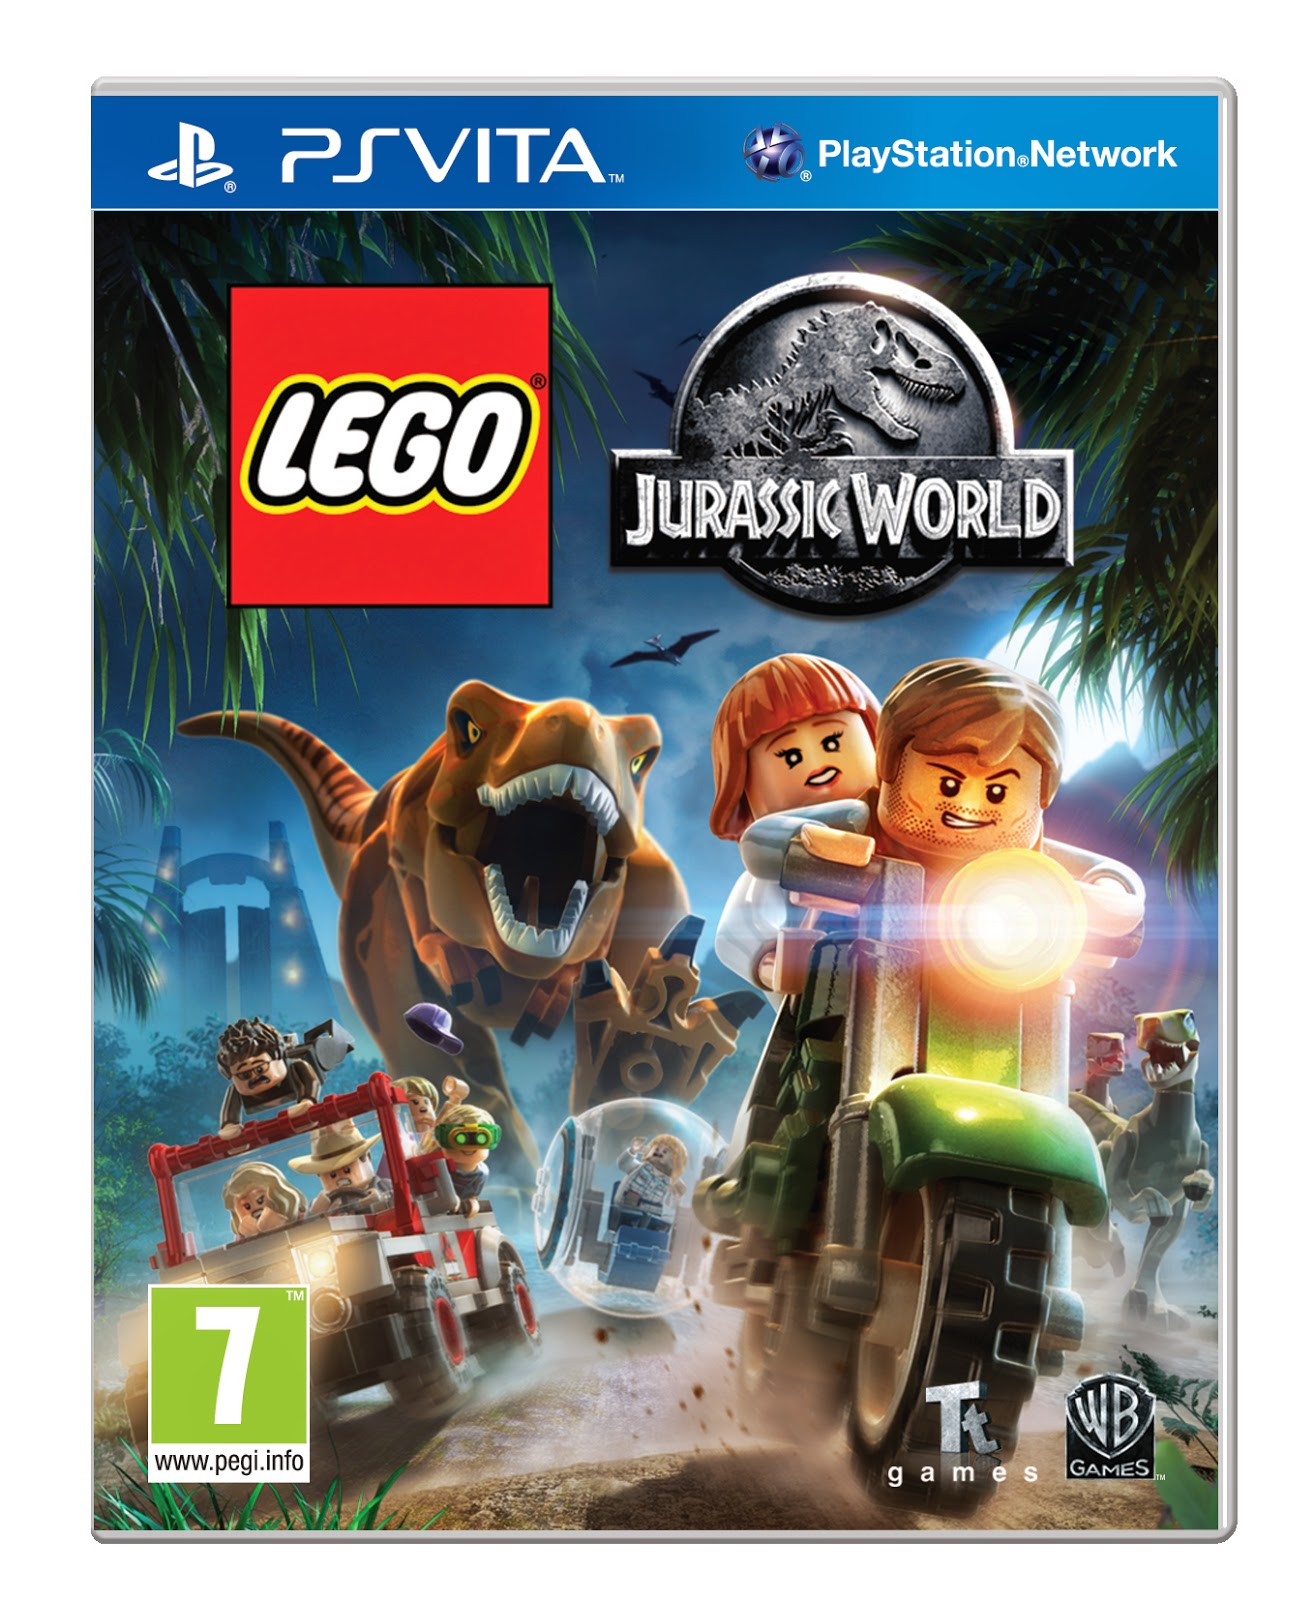 jurassic world game ps vita